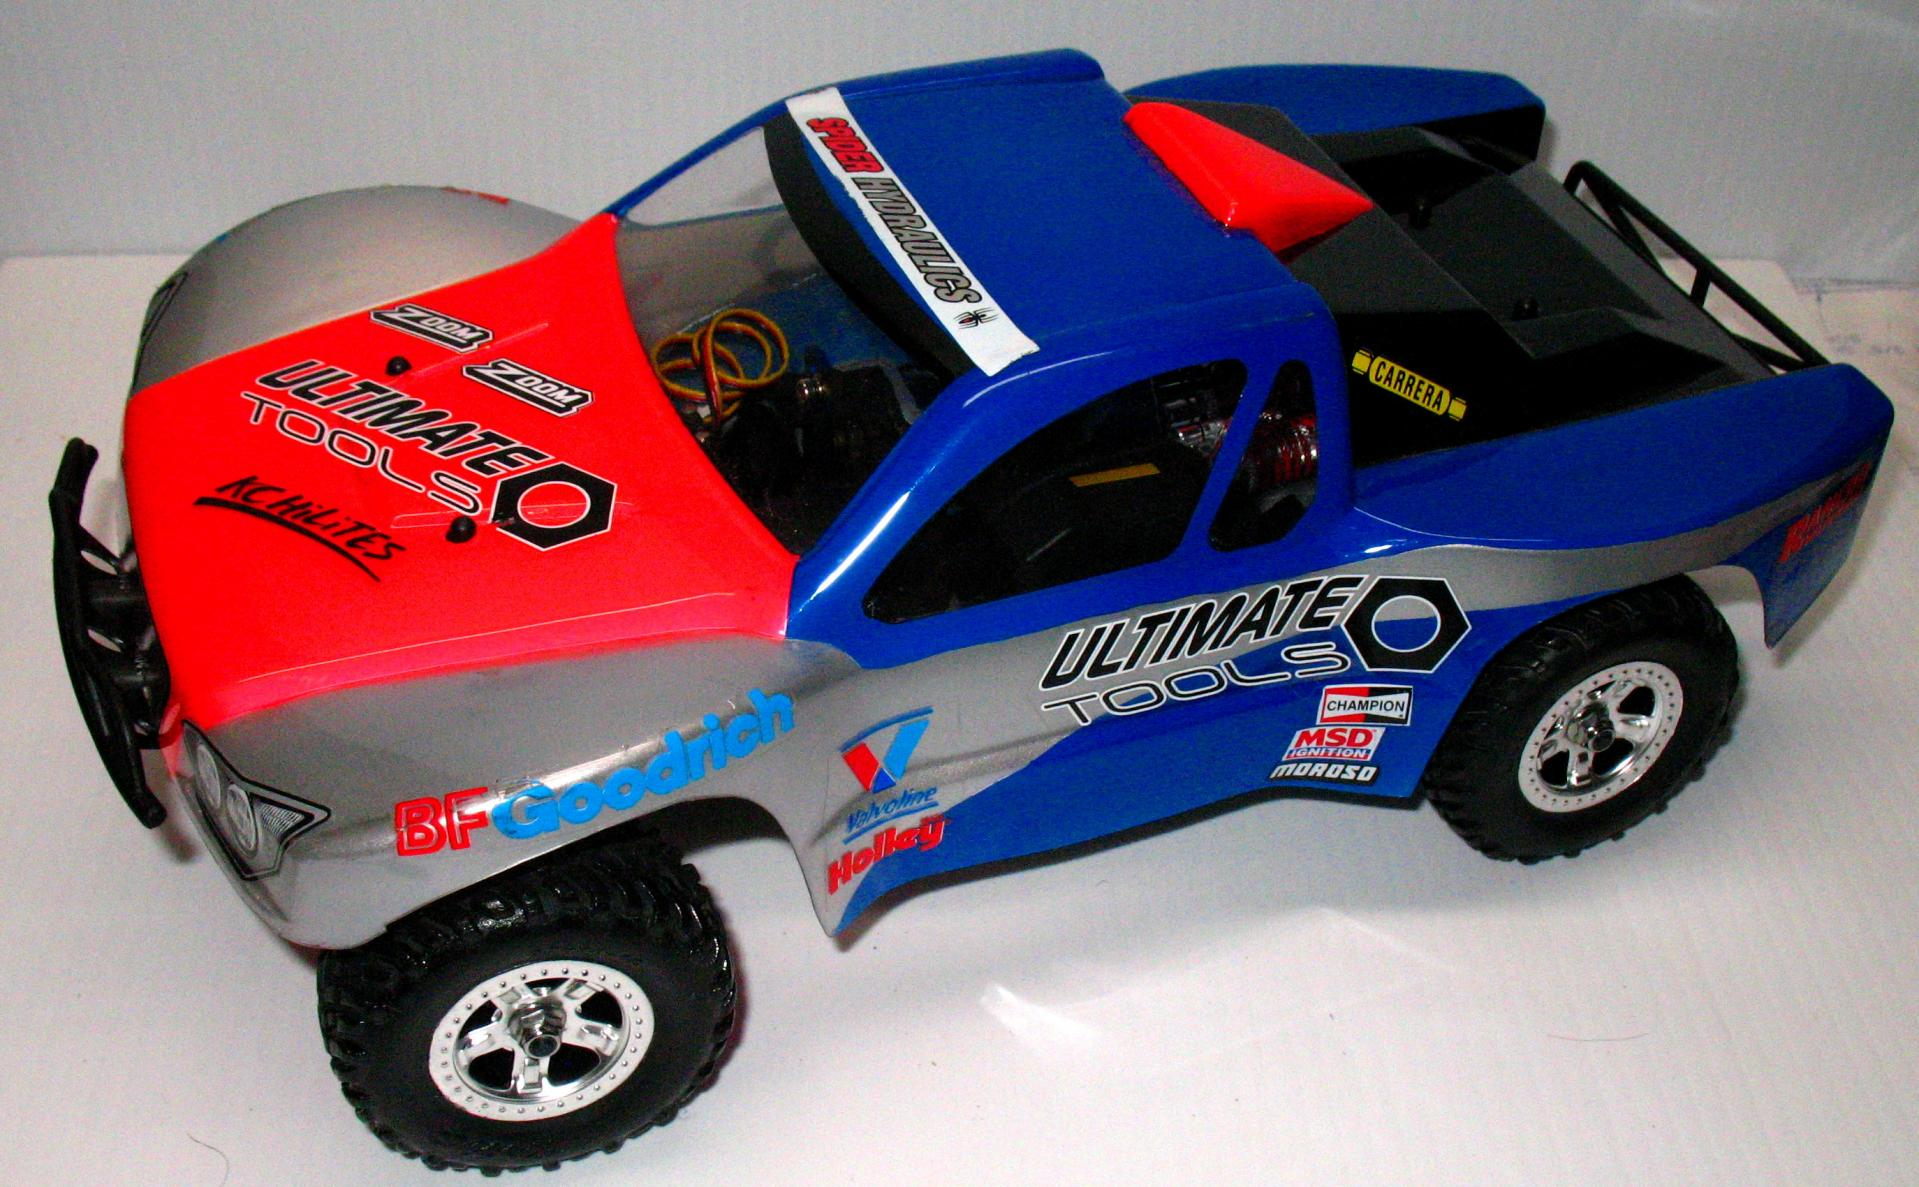 Niederlande-infos | Pictures of Custom Traxxas Slash Body